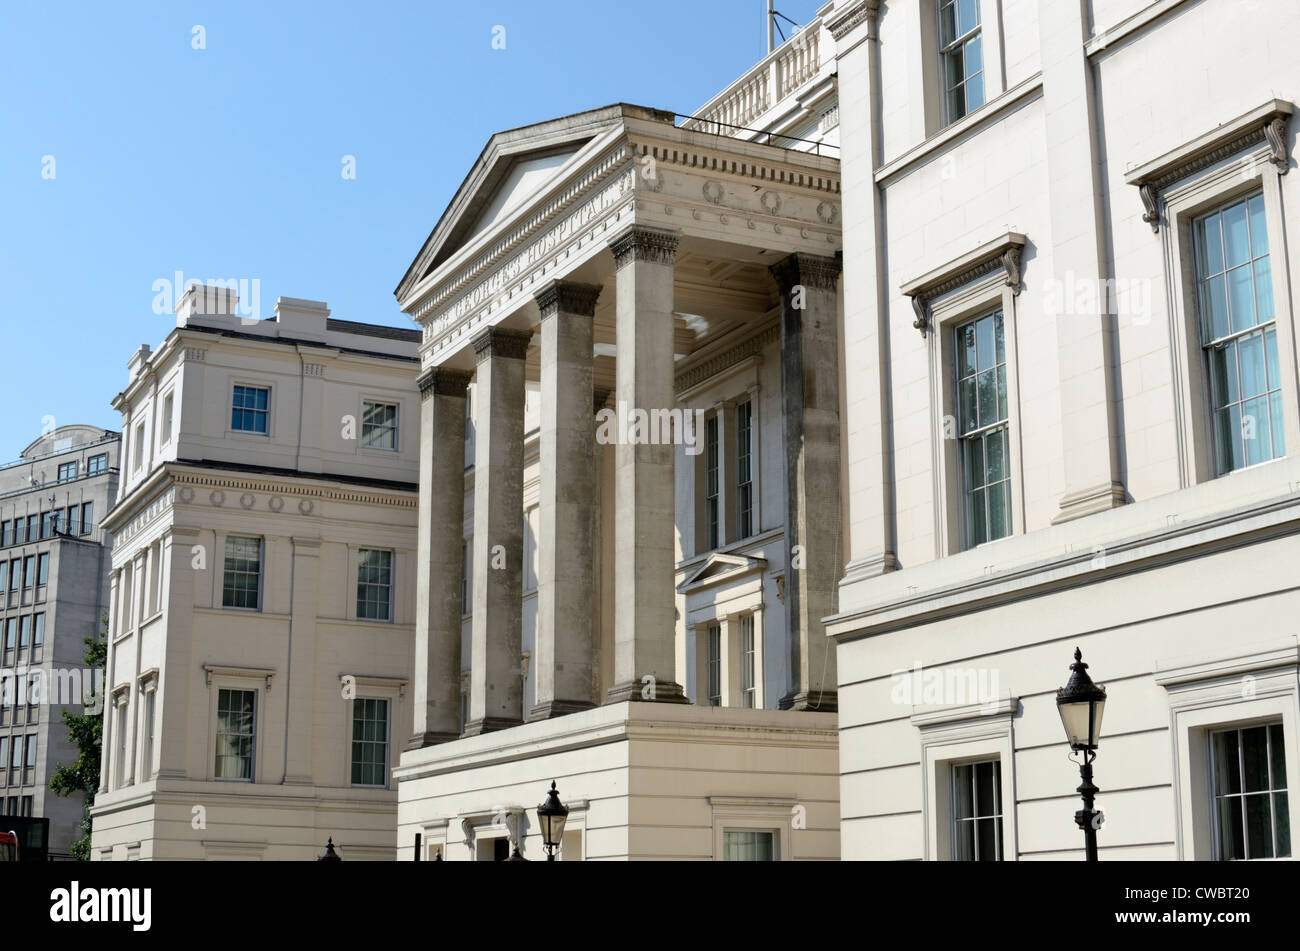 The Lanesborough Hotel former Lanesborough House part of St George's Hospital, Hyde Park Corner, London, UK - Stock Image